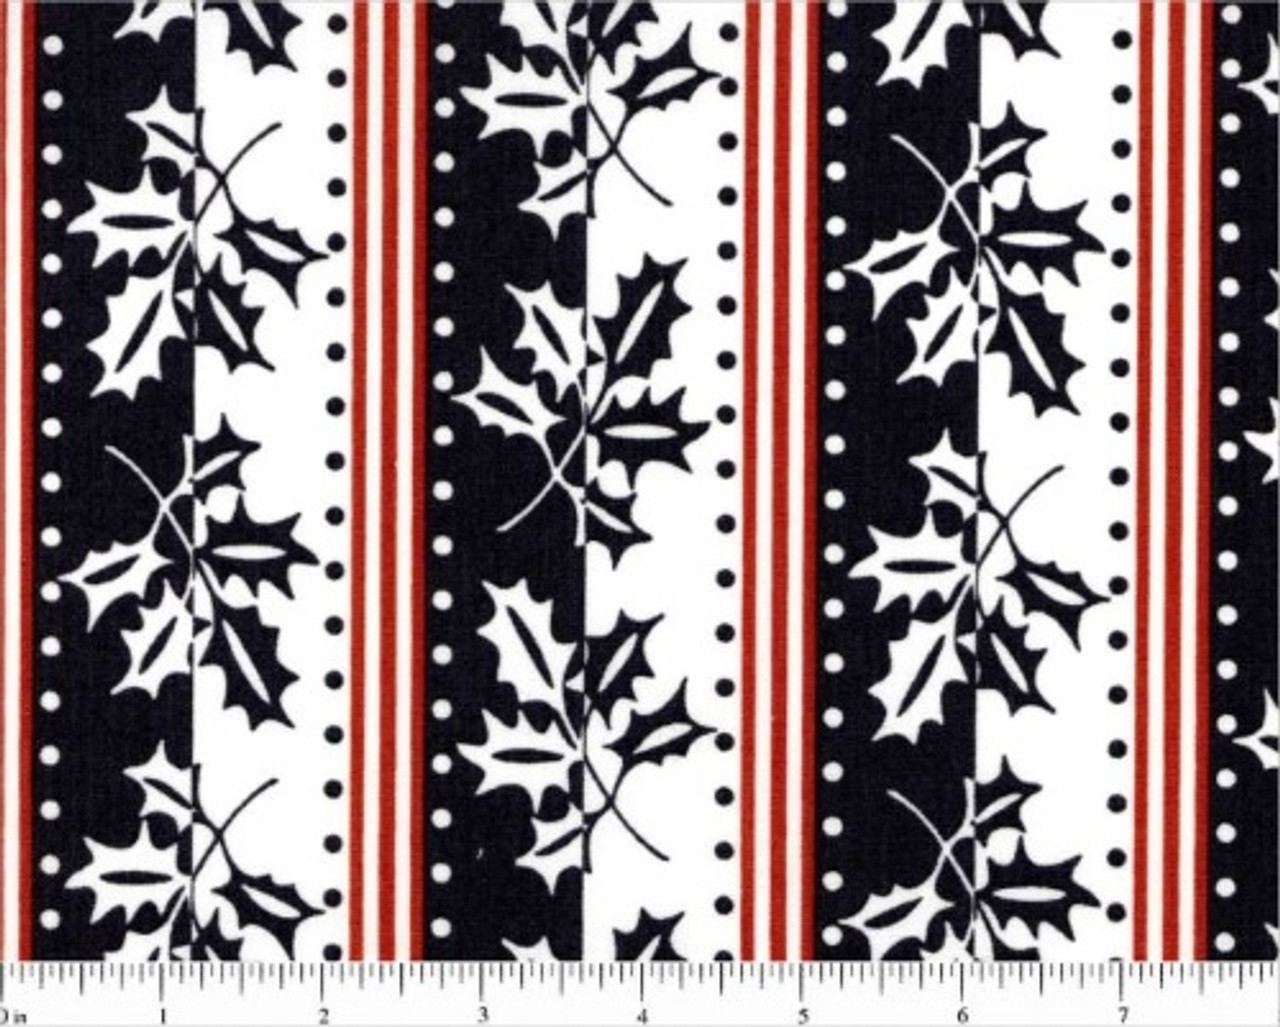 Black White And Red Border Stripe Fabric A 8746 C Winter Berries By Andover Fabrics